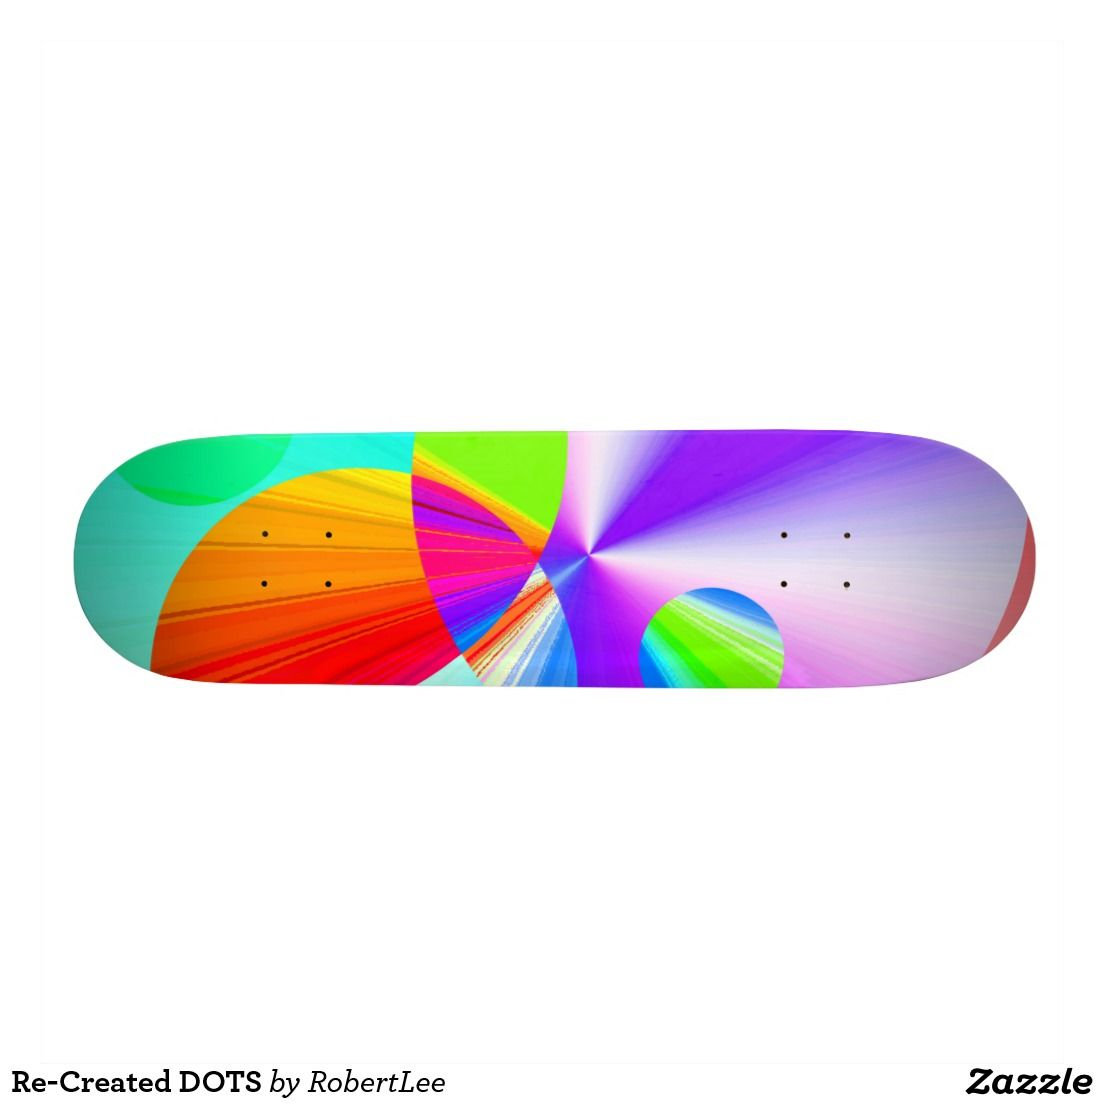 Re-Created DOTS Skateboard Decks #Robert #S. #Lee #skateboard #board #decks #skater #design #colors #customizable #re-created